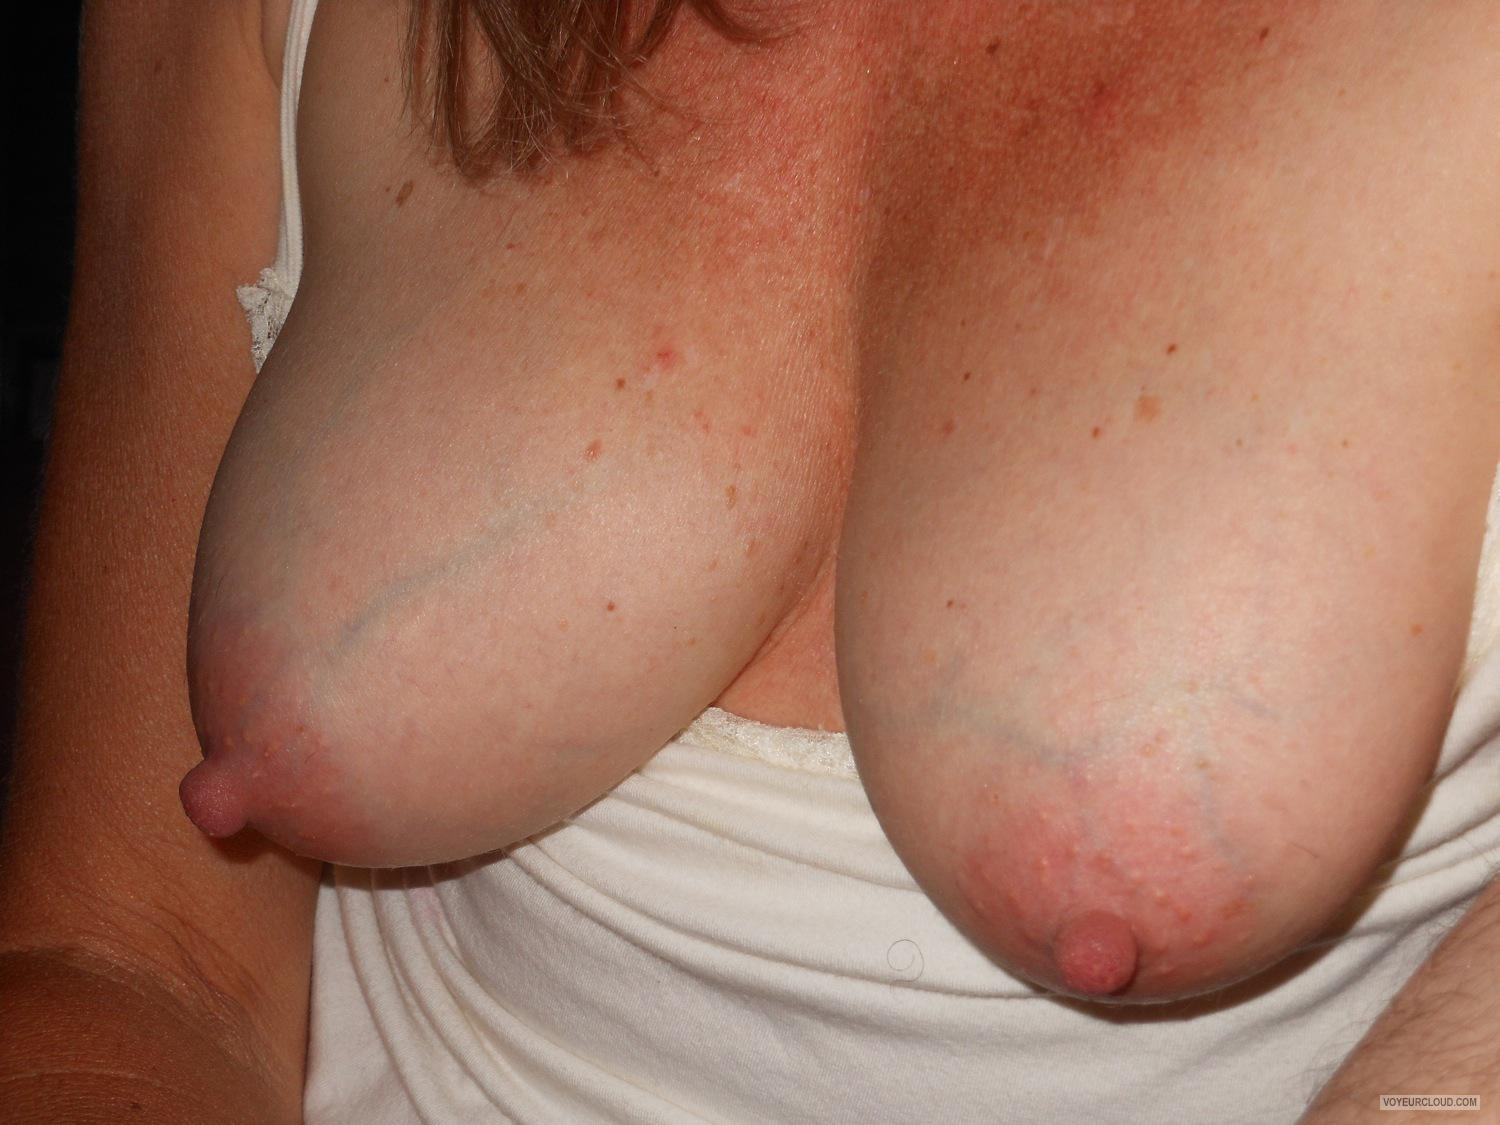 Tit Flash: Wife's Medium Tits - Sexy Sam from United States